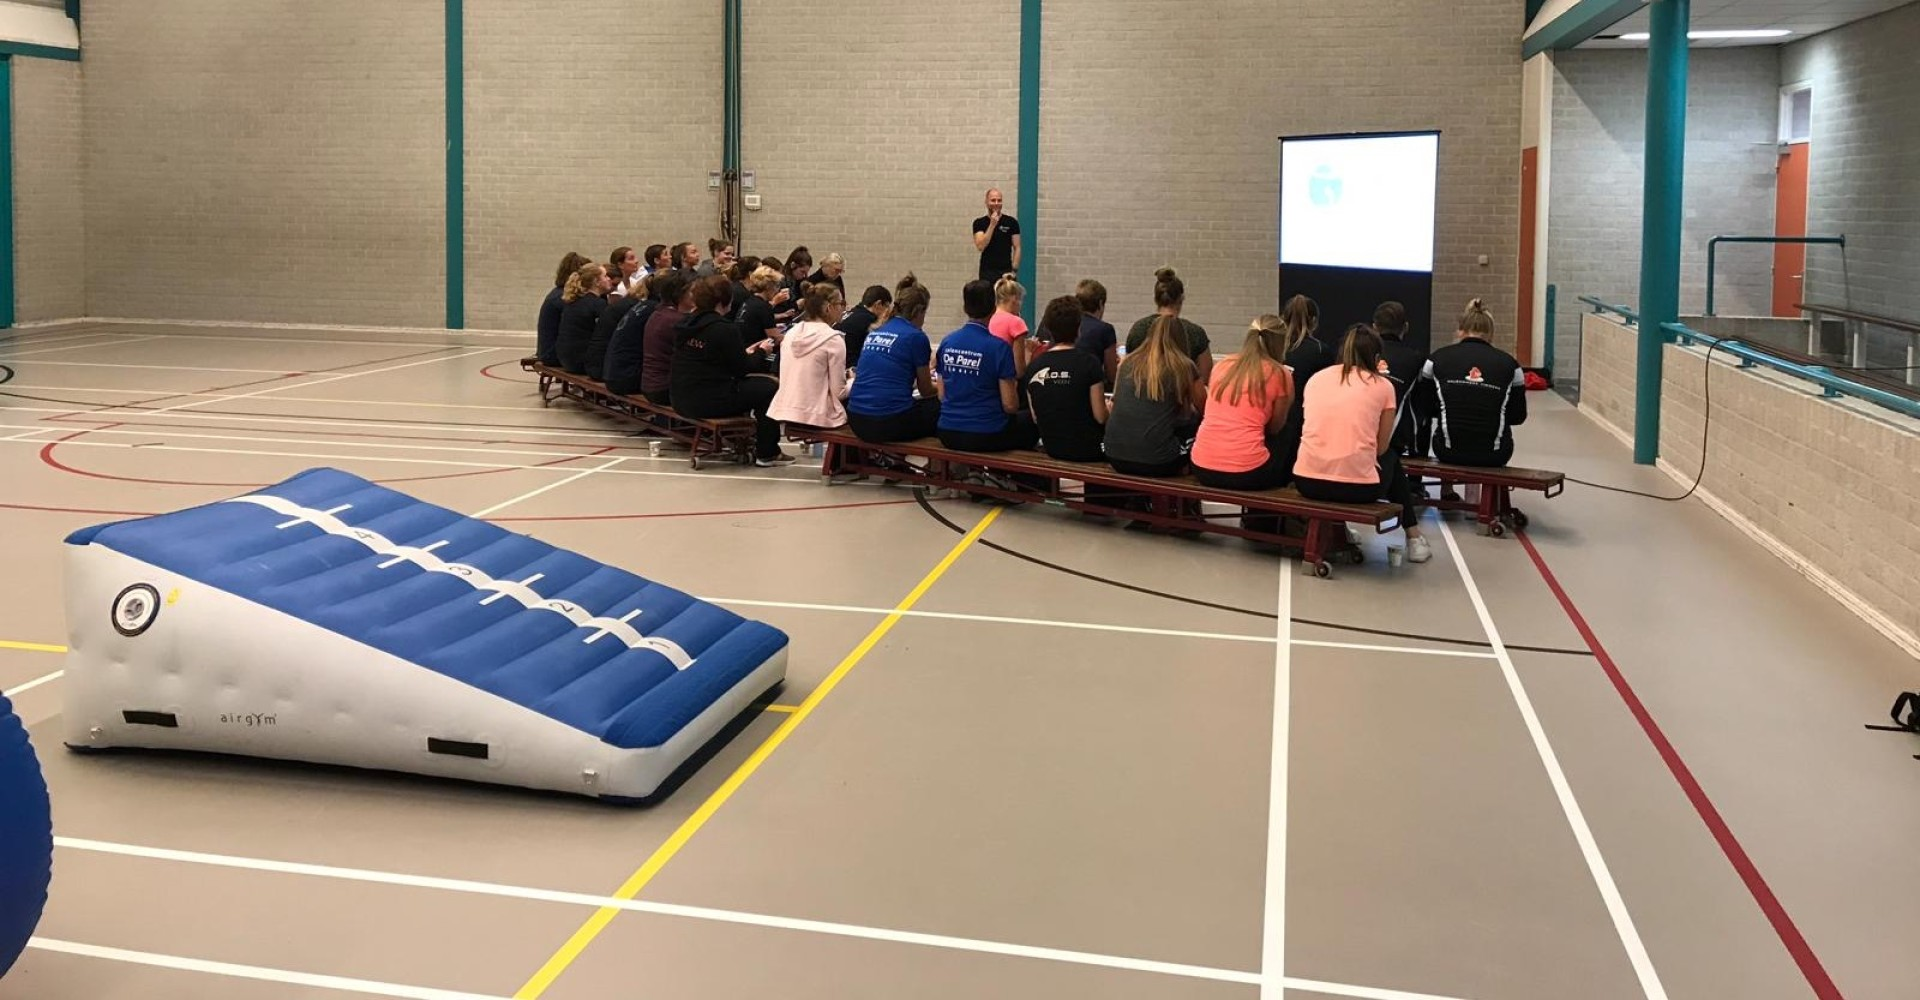 Beter Turnen - Tools & coaching voor turntrainers en turnsters